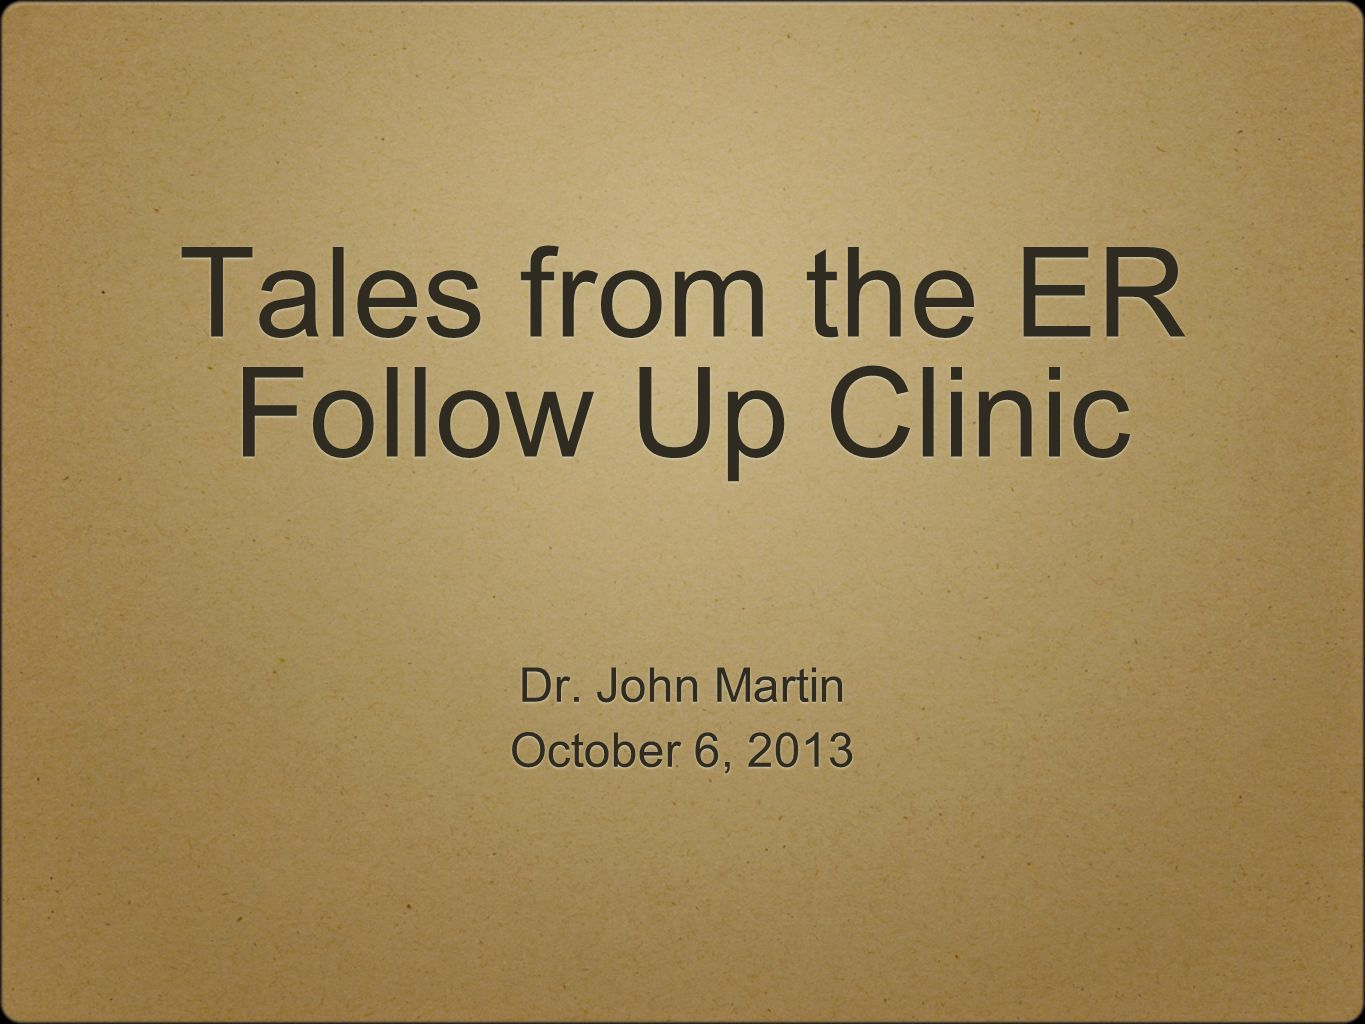 Tales from the ER Follow Up Clinic